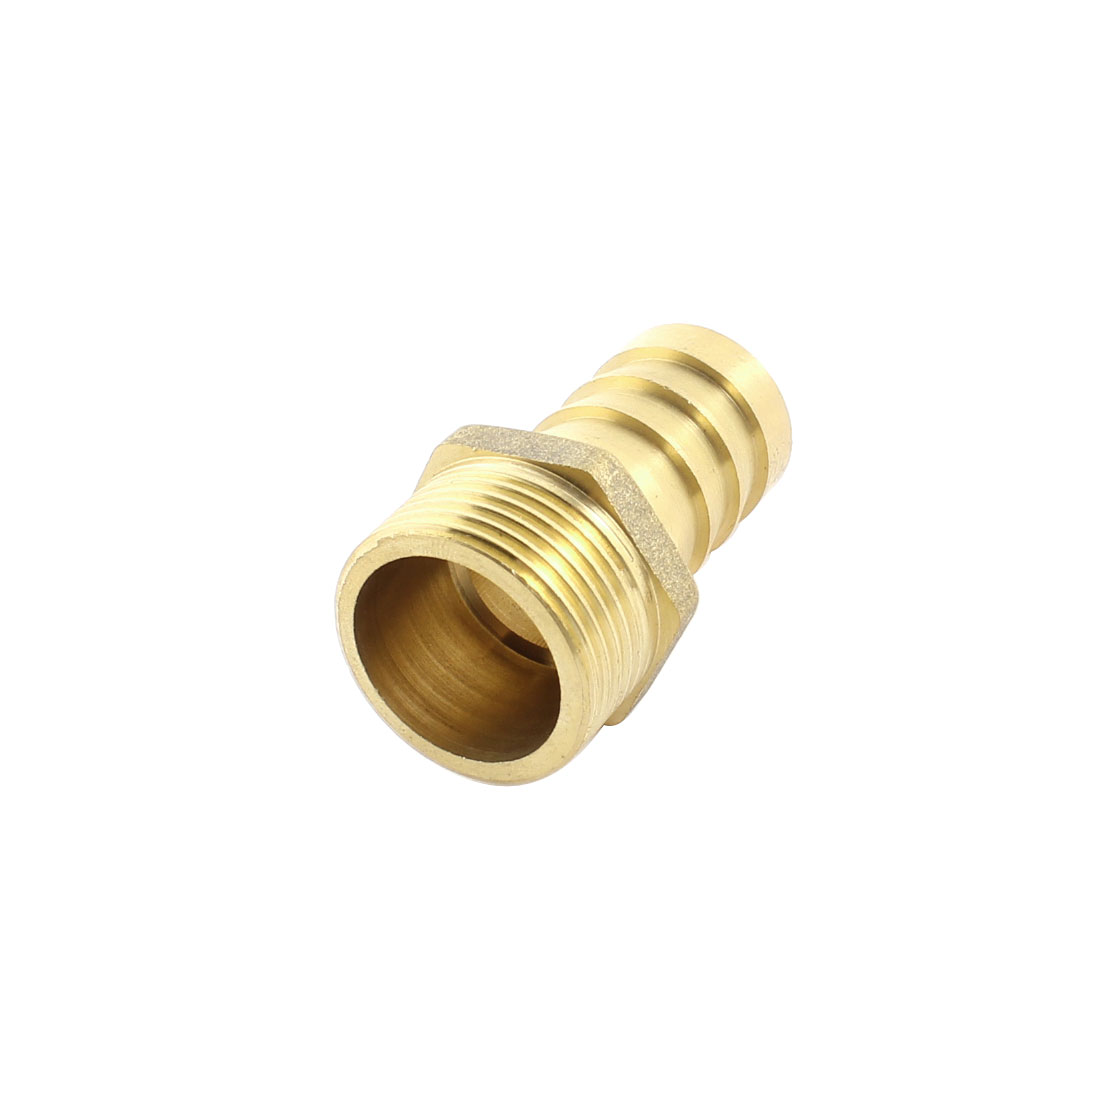 3/4PT x 20mm 2 Ways Straight Brass Pneumatic Air Hose Barb Coupler Fitting Pipe Tube Connector